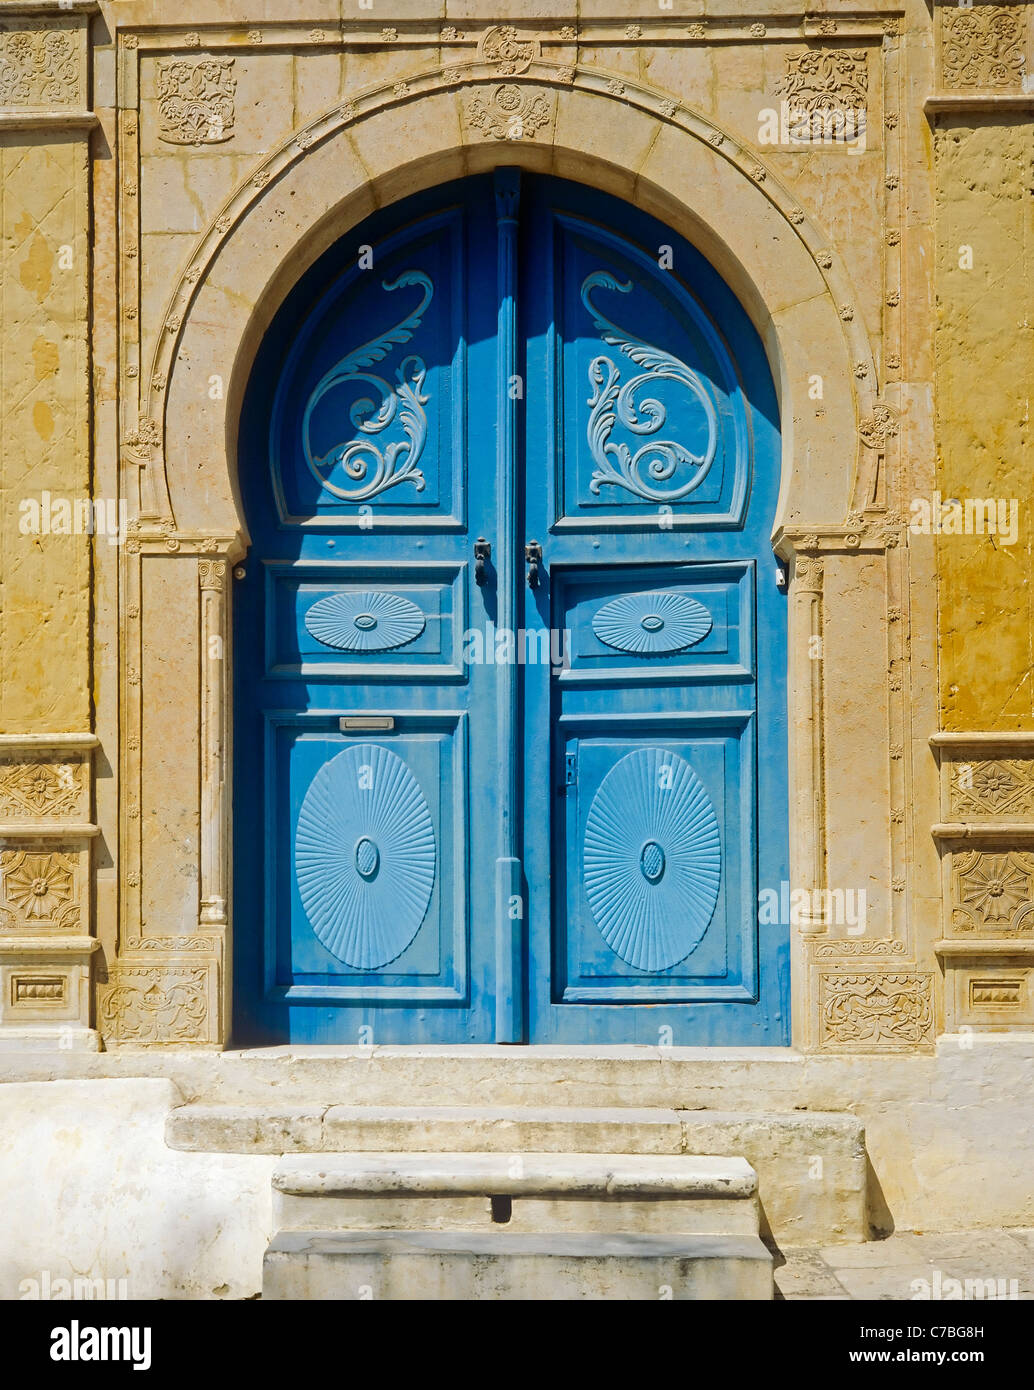 Sidi Bou Said, Tunisia, North Africa, traditional arched doorway with blue doors, - Stock Image